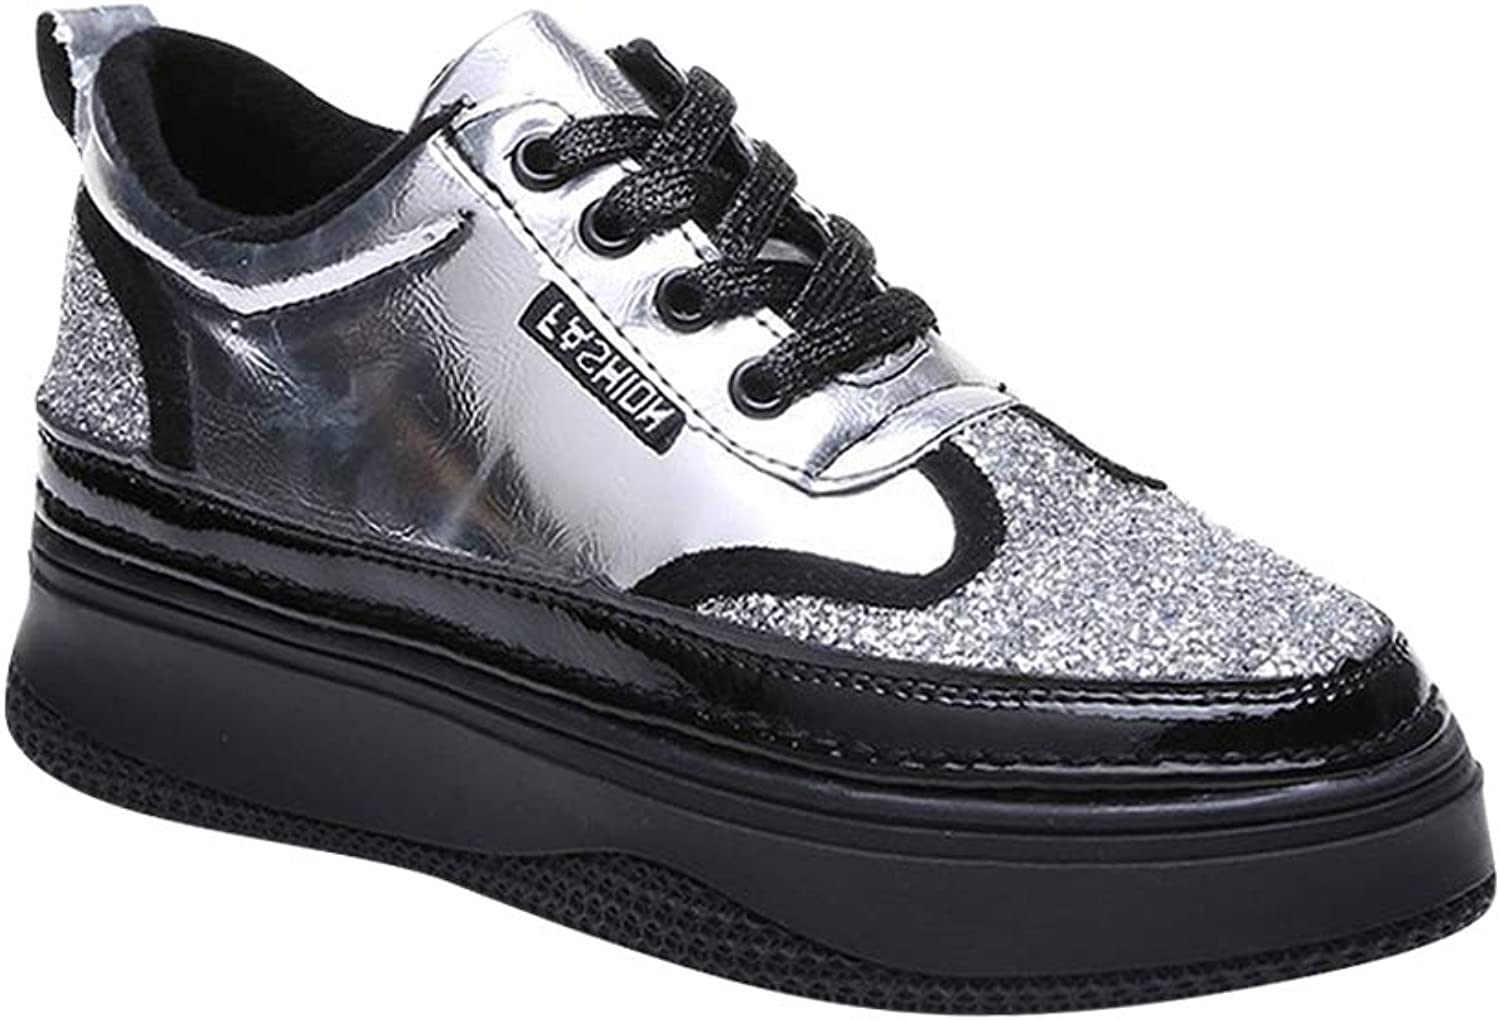 Yudesun Womens Platform Trainers - Mid Wedge Hidden Heels Casual Lace up Sneakers Glitter Sequin Round Toe Solid Chunky shoes